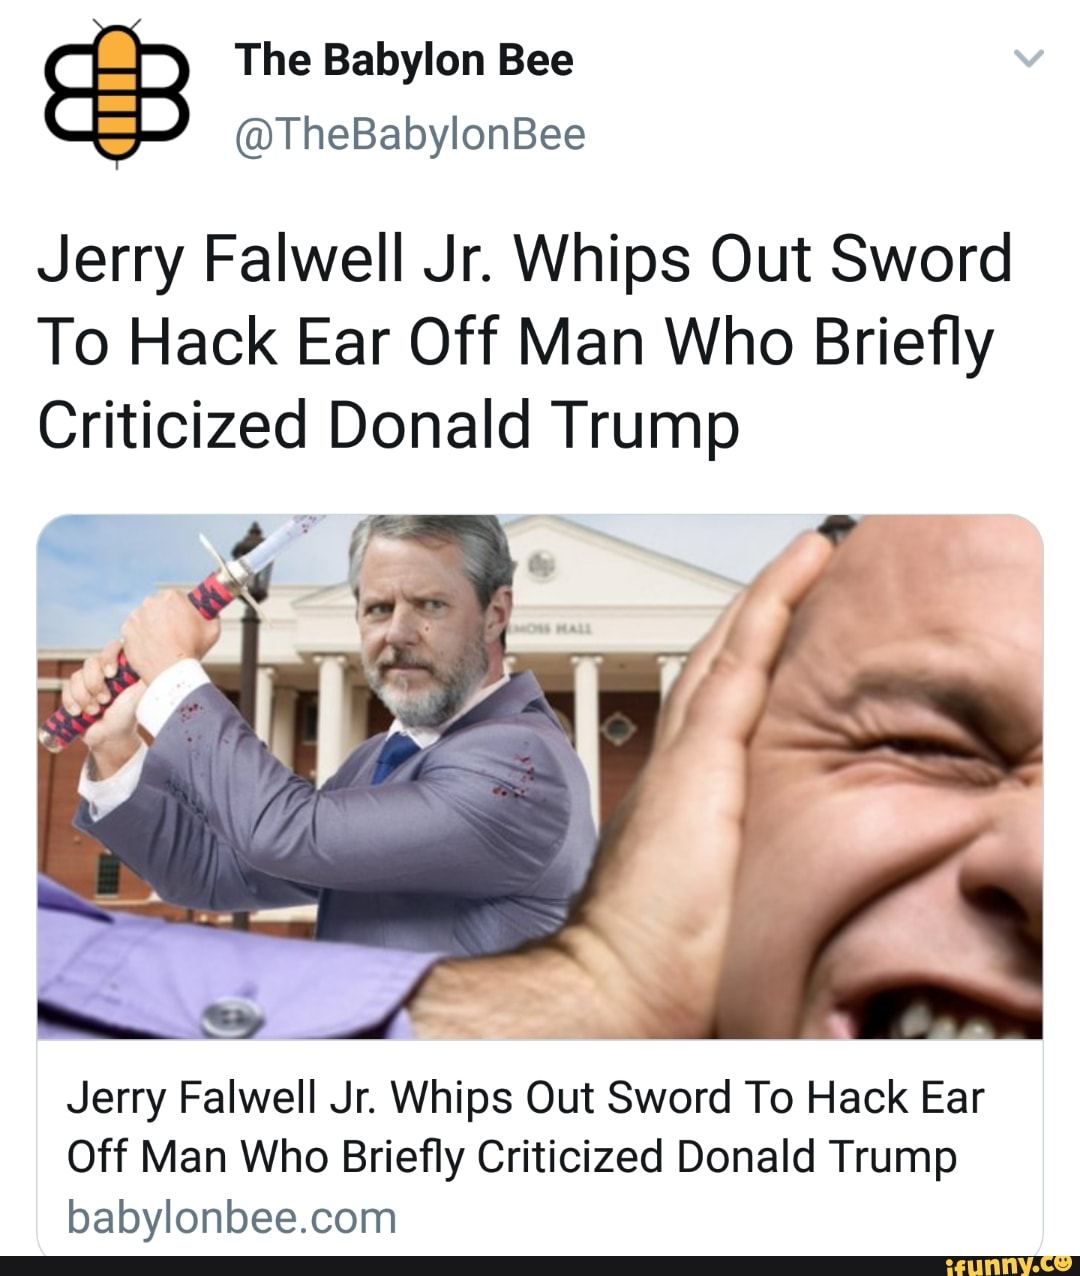 Jerry Falwell Jr Whips Out Sword To Hack Ear Off Man Who Briefly